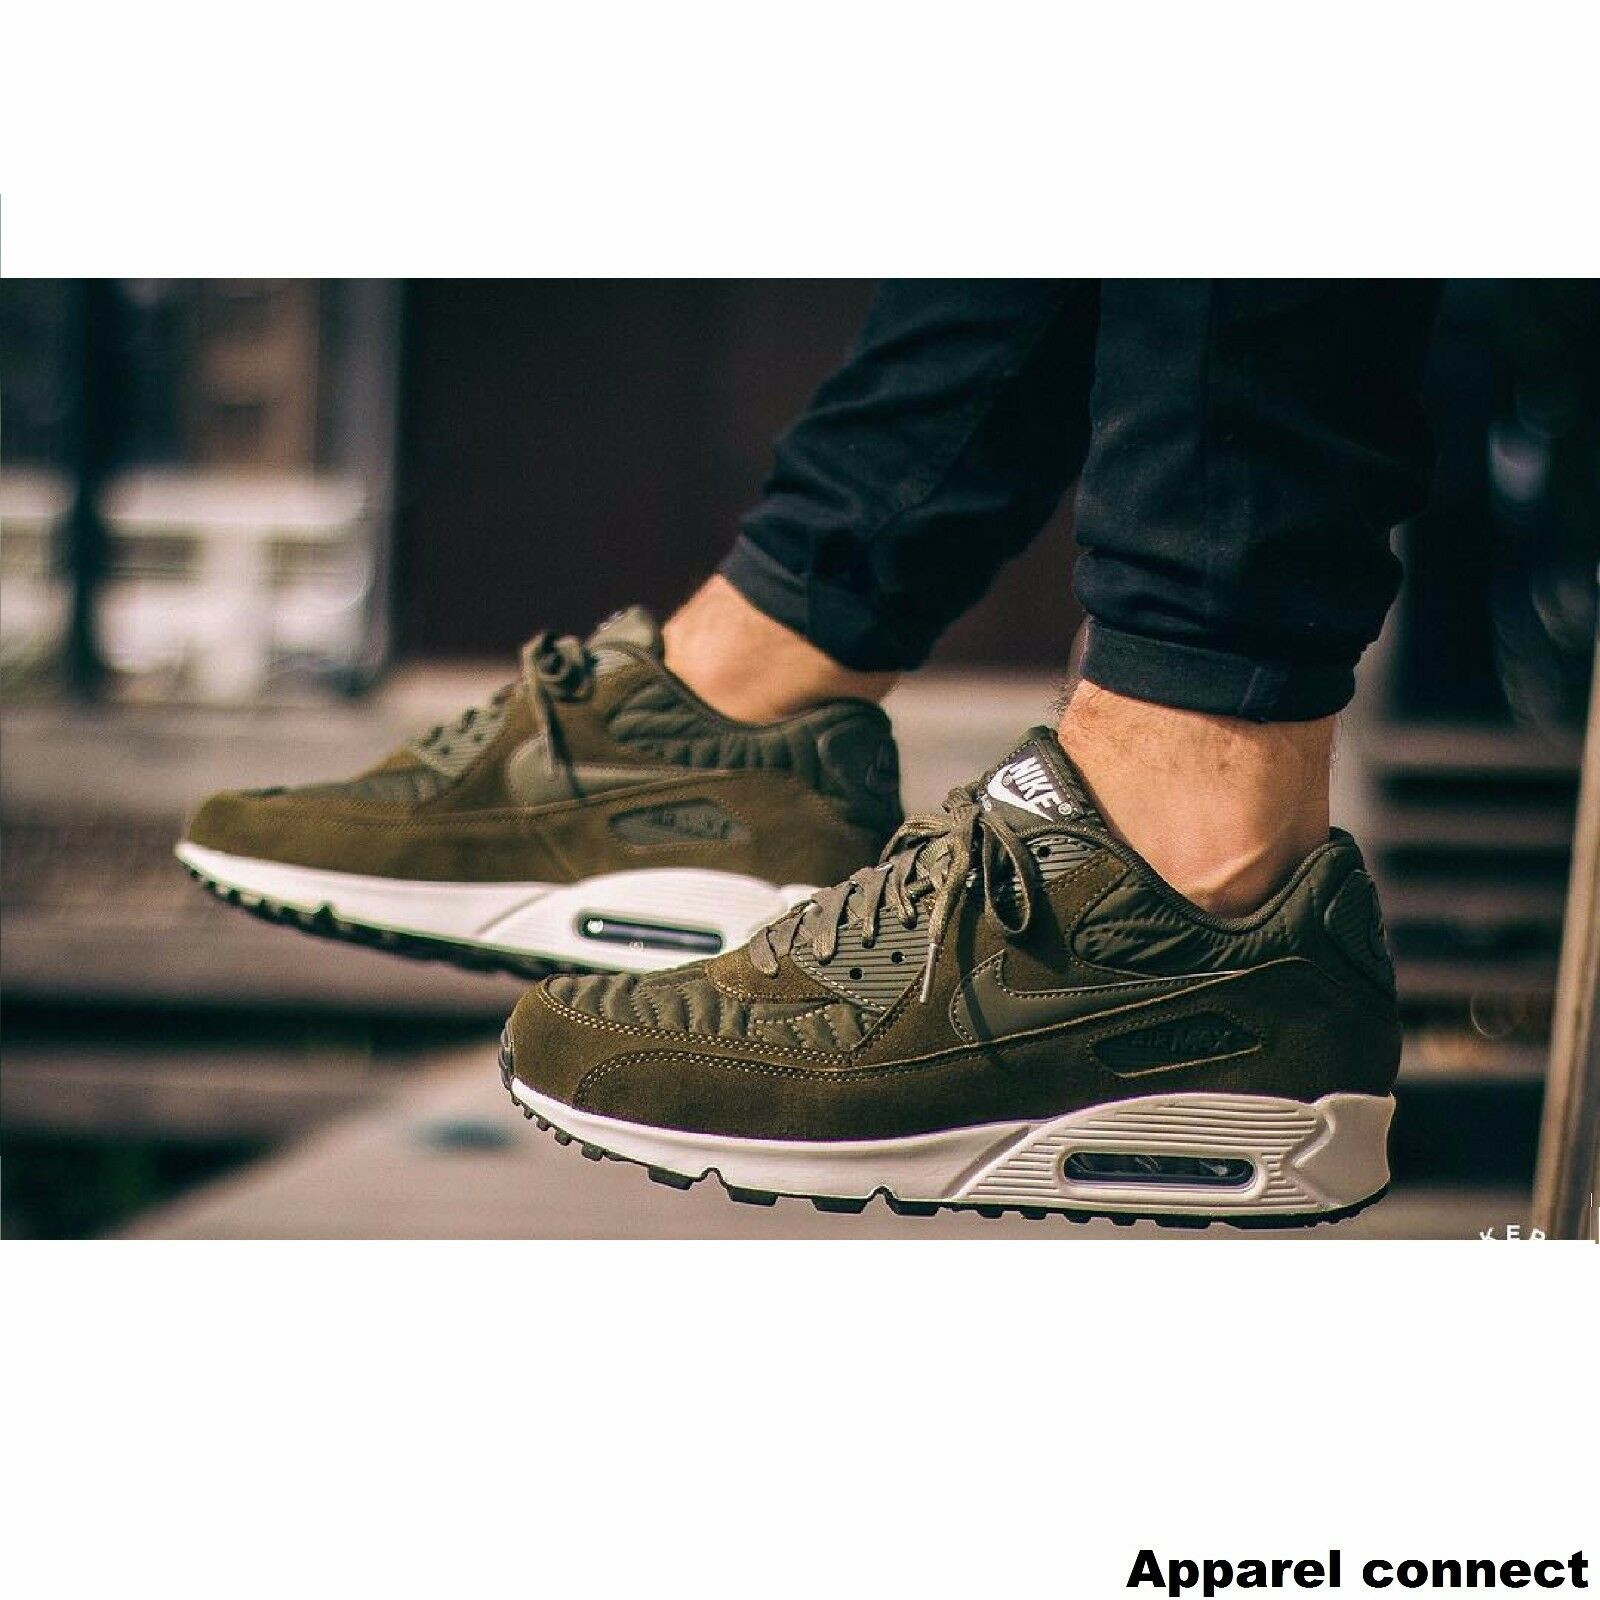 Nike Air Max Original 90 Premium Femme/ Ladies Trainers, Bottes FREE DELIVERY